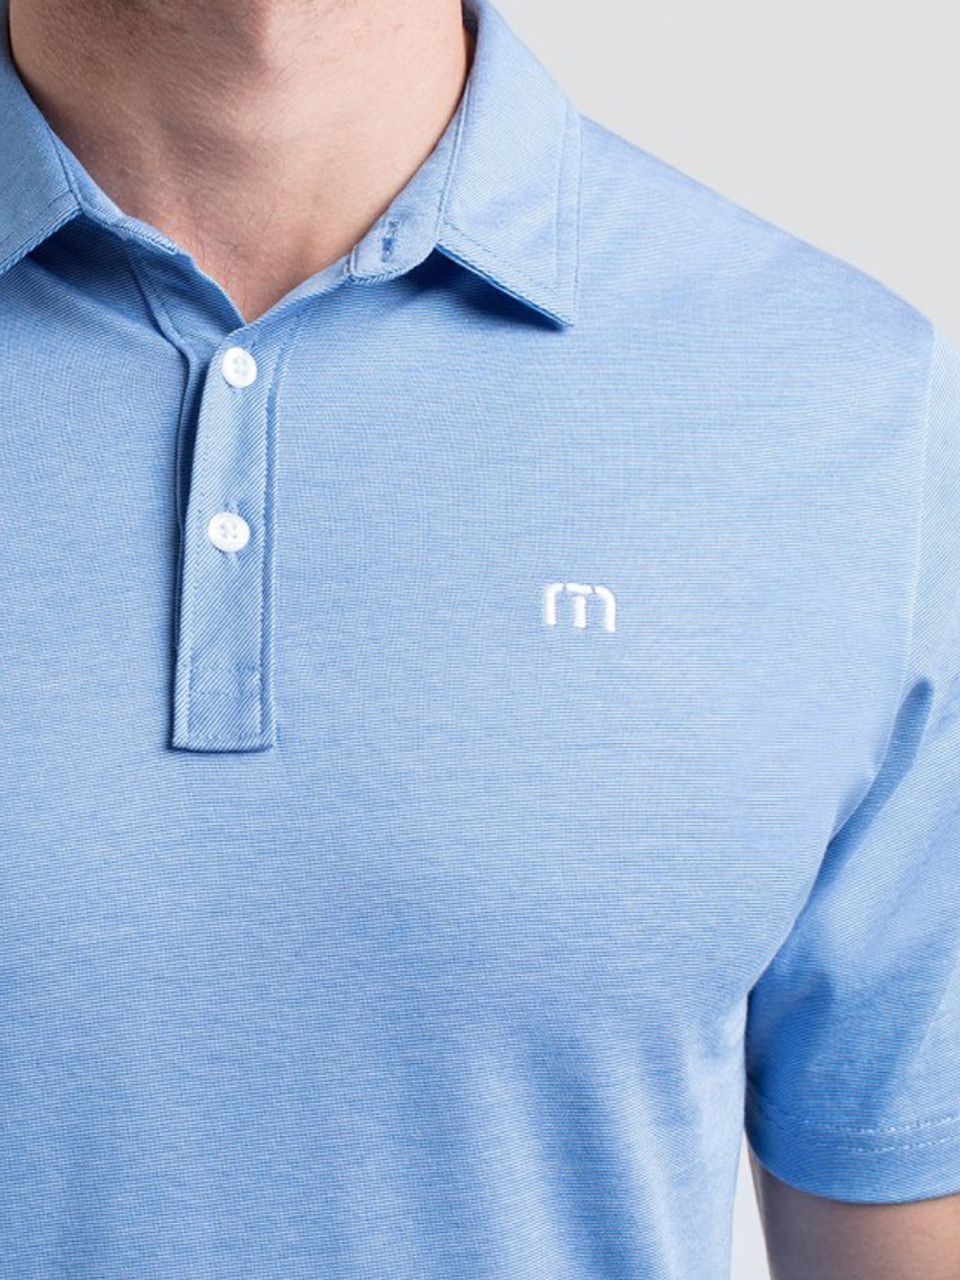 b9ee99d7 Travis Mathew The Zinna Polo - Strong Blue - Mens For Sale   GolfBox